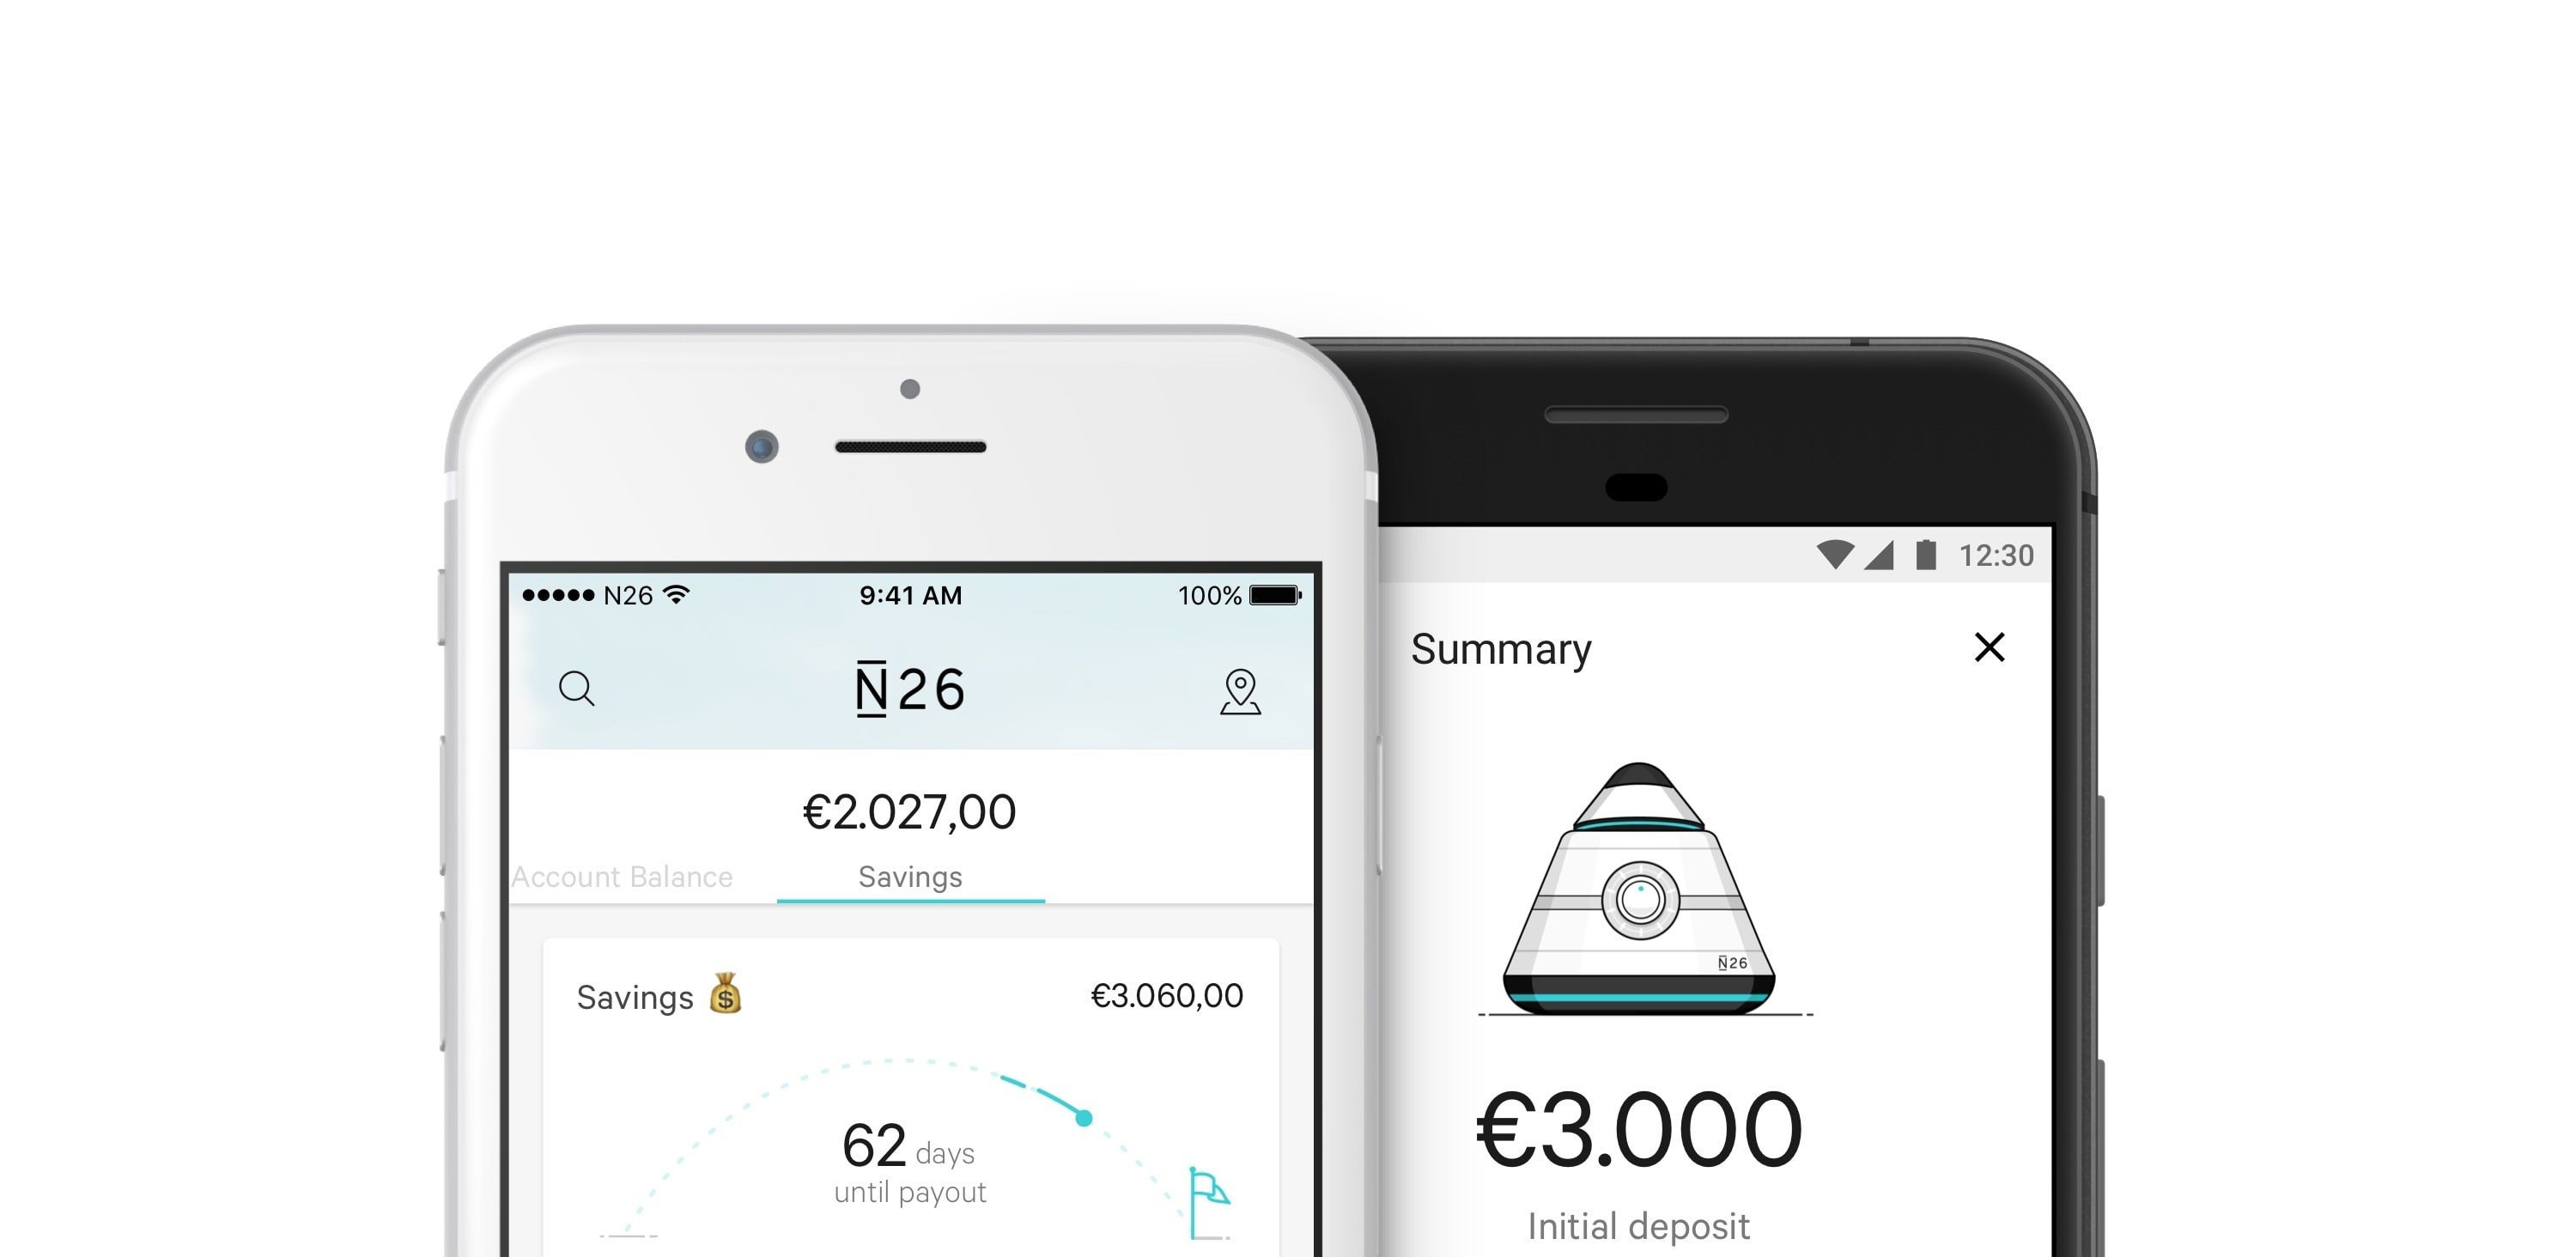 N26 and Raisin partner to offer innovative savings products at attractive rates